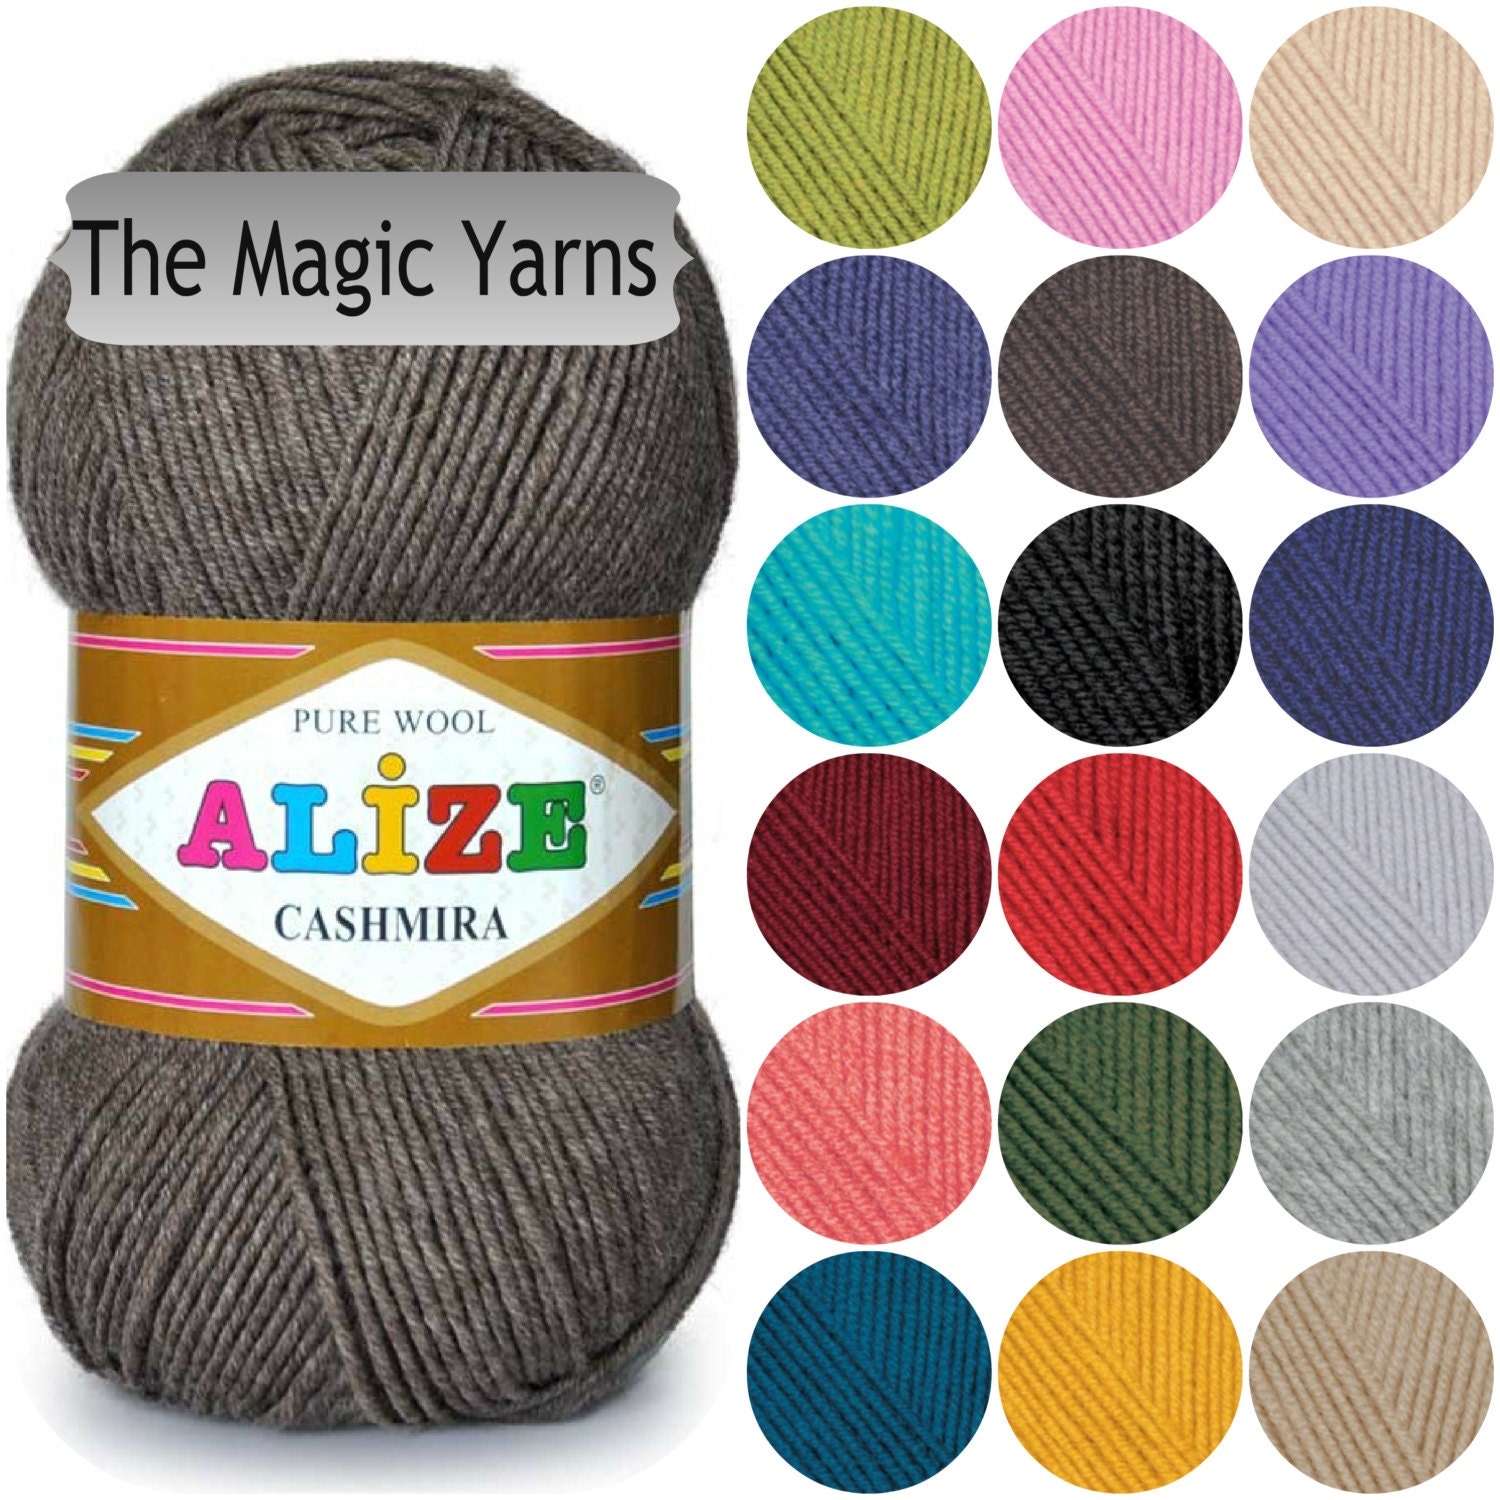 Yarn Alize: properties, features, reviews 55